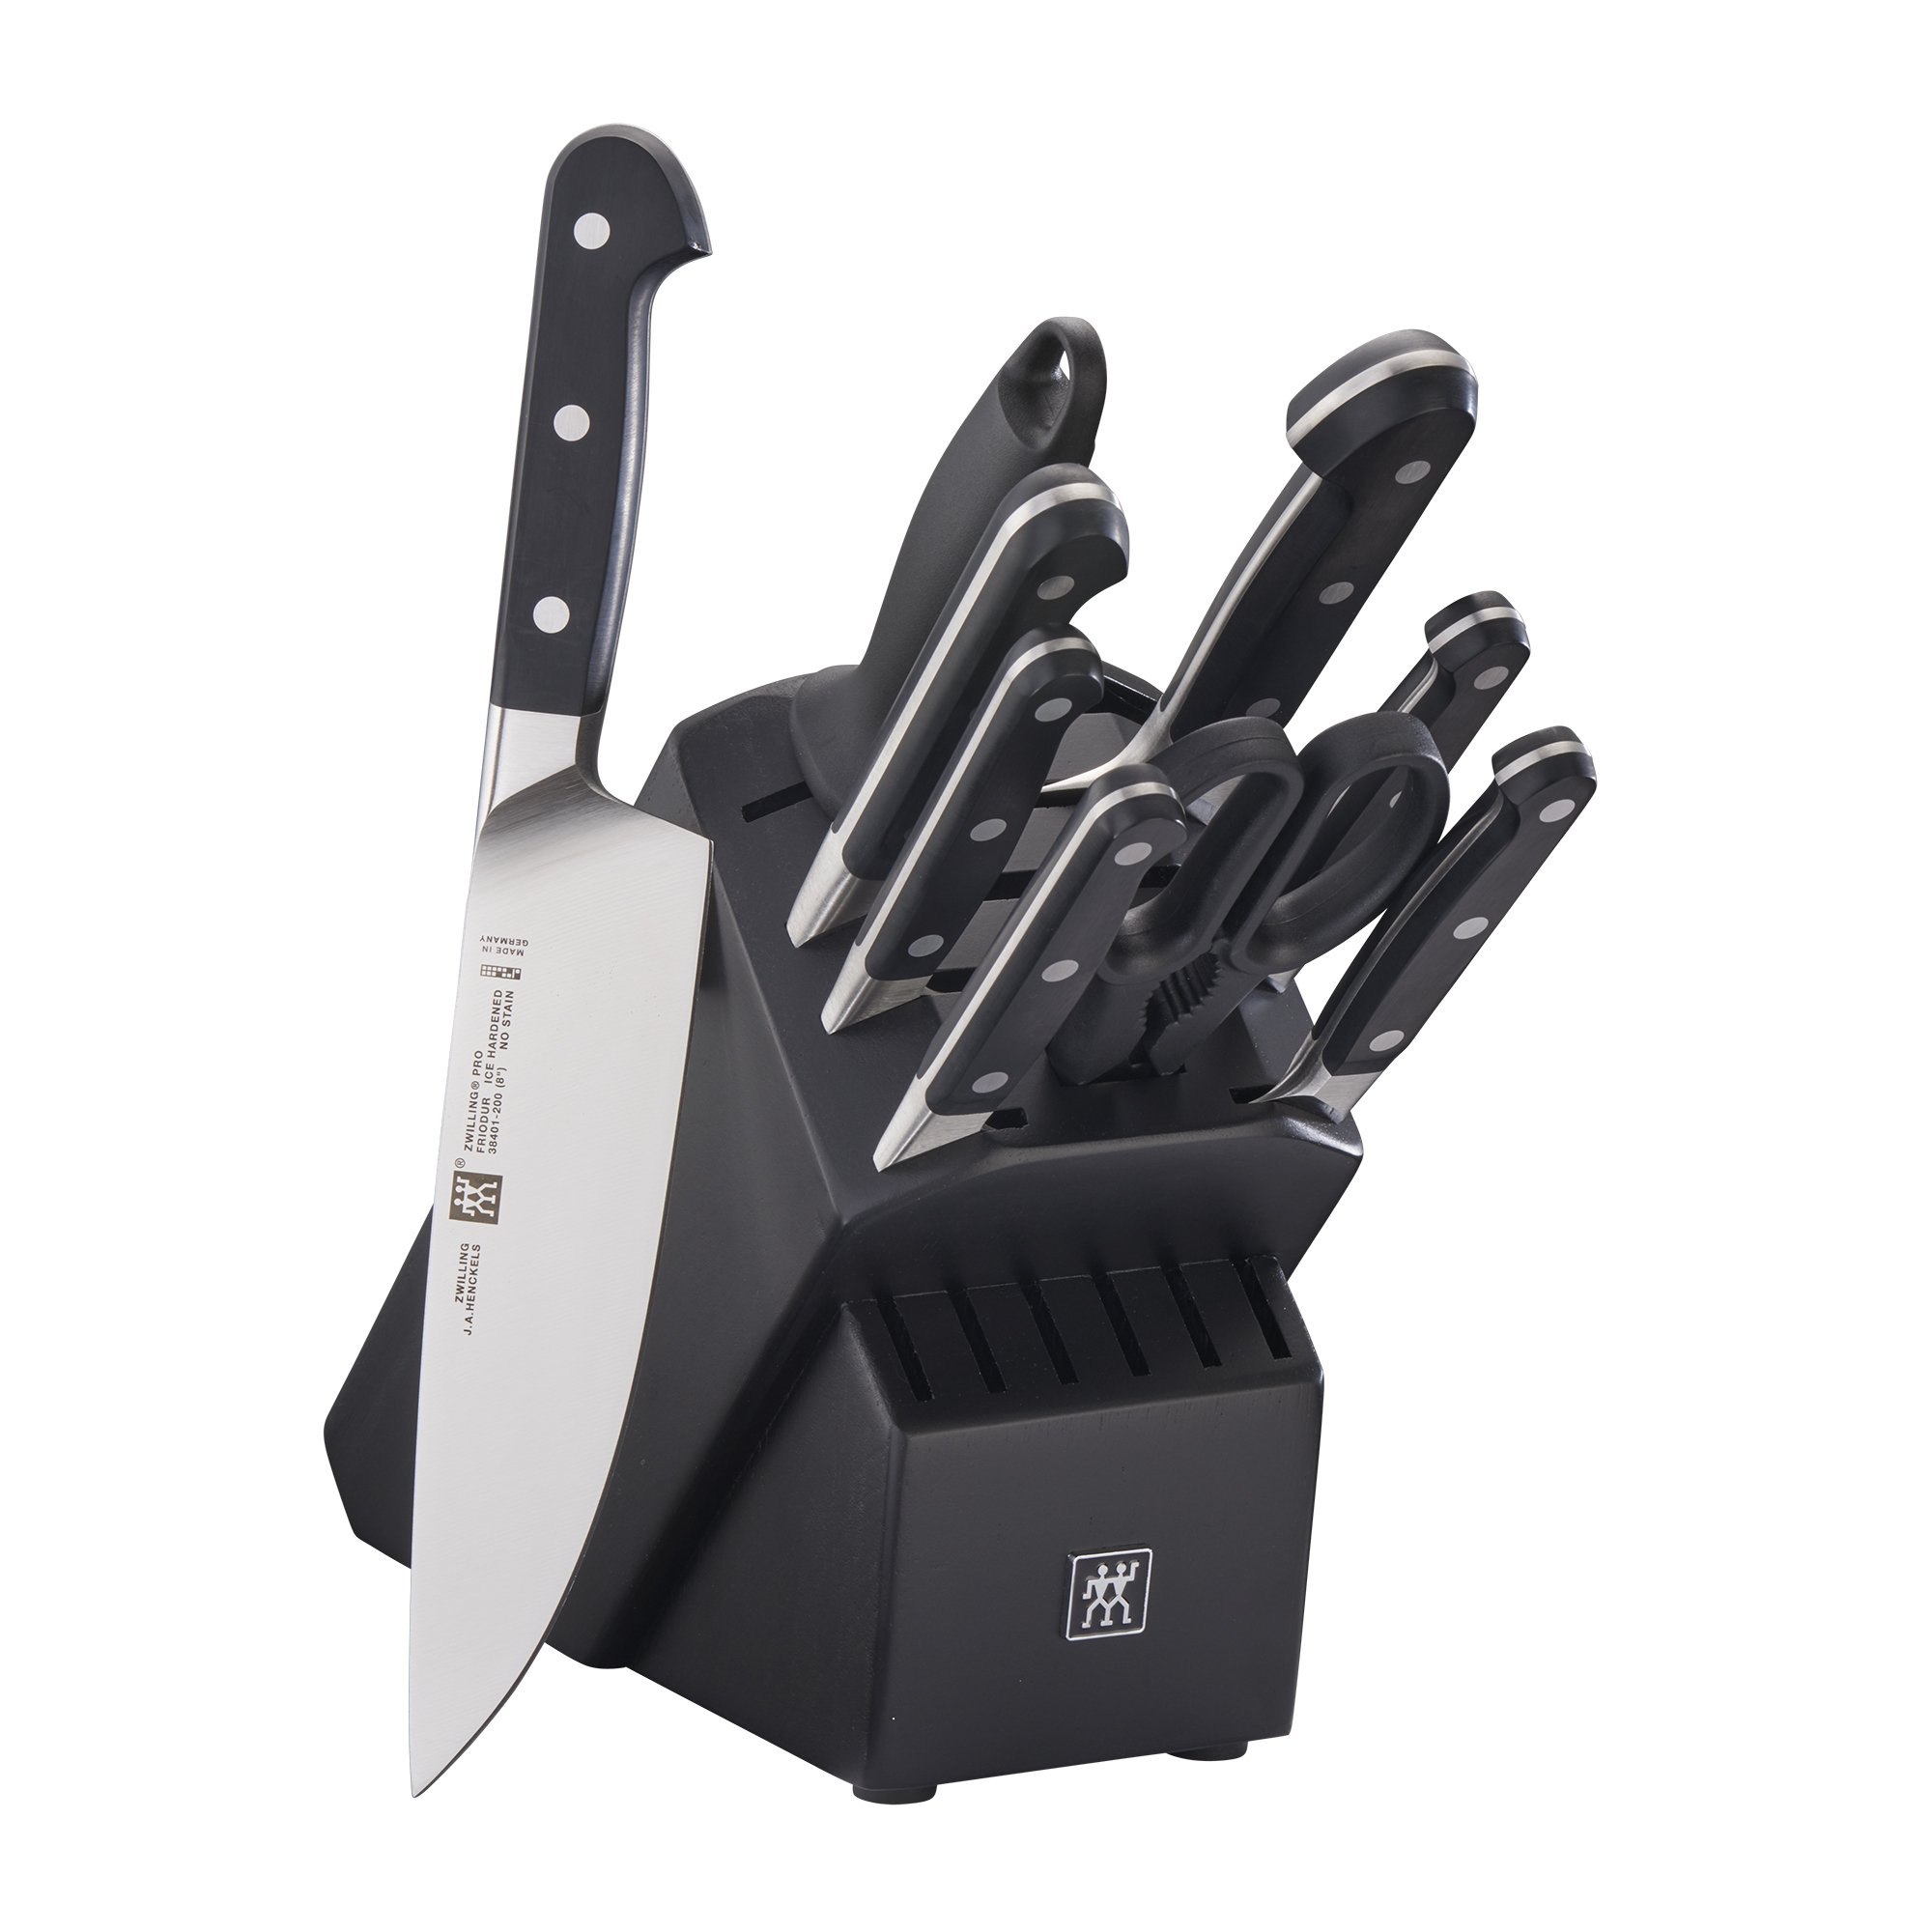 ZWILLING Pro 10-pc Knife Block Set - Black by ZWILLING J.A. Henckels (Image #4)